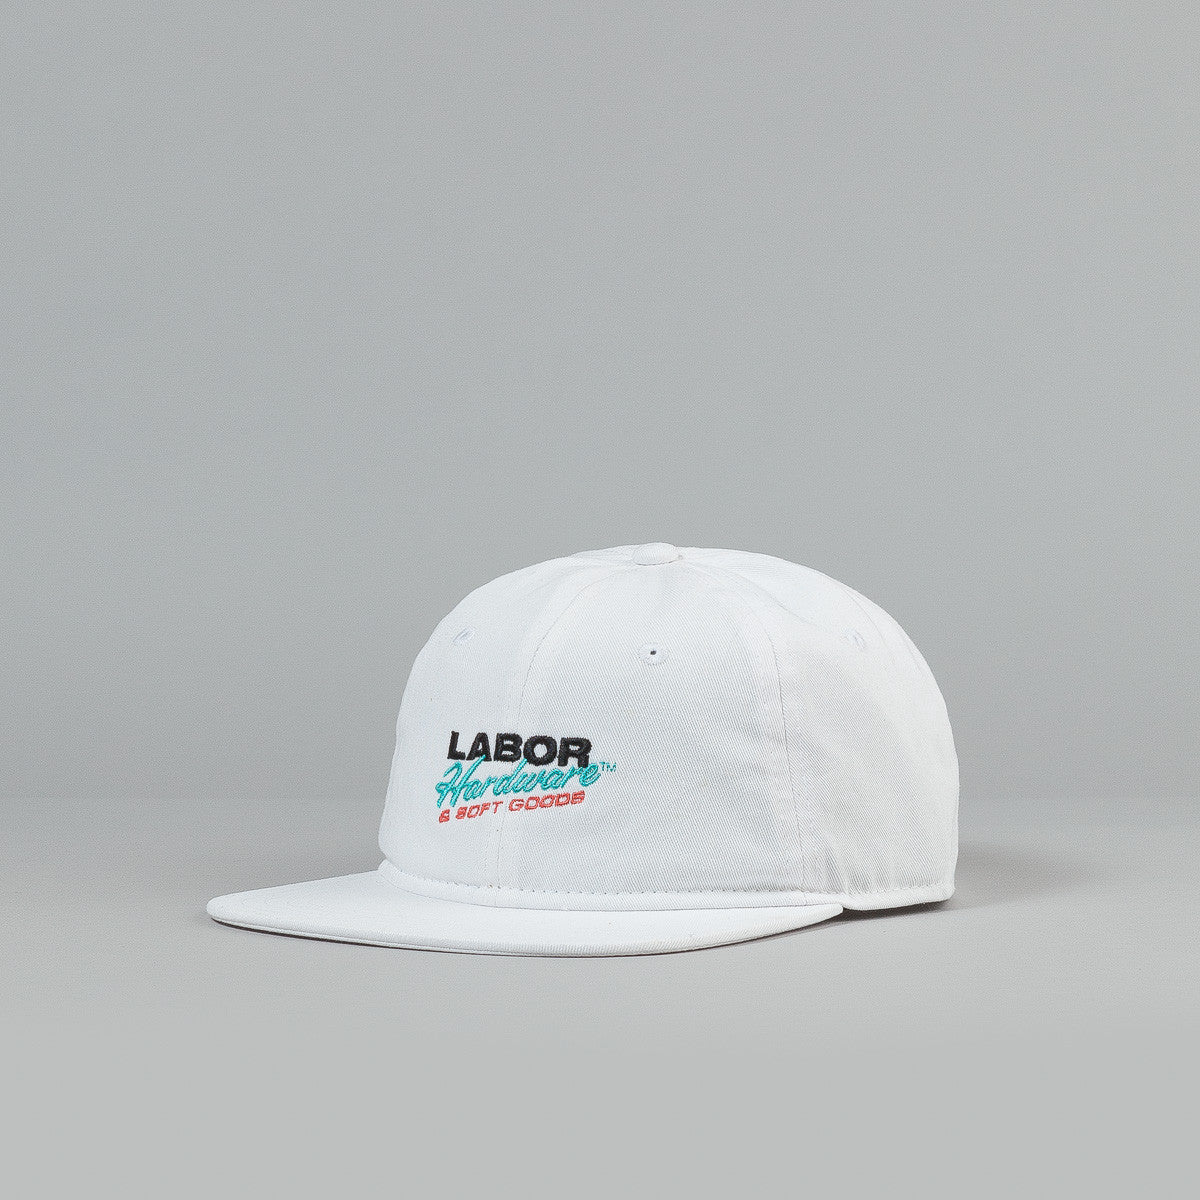 Labor Hardware & Softgoods Cap